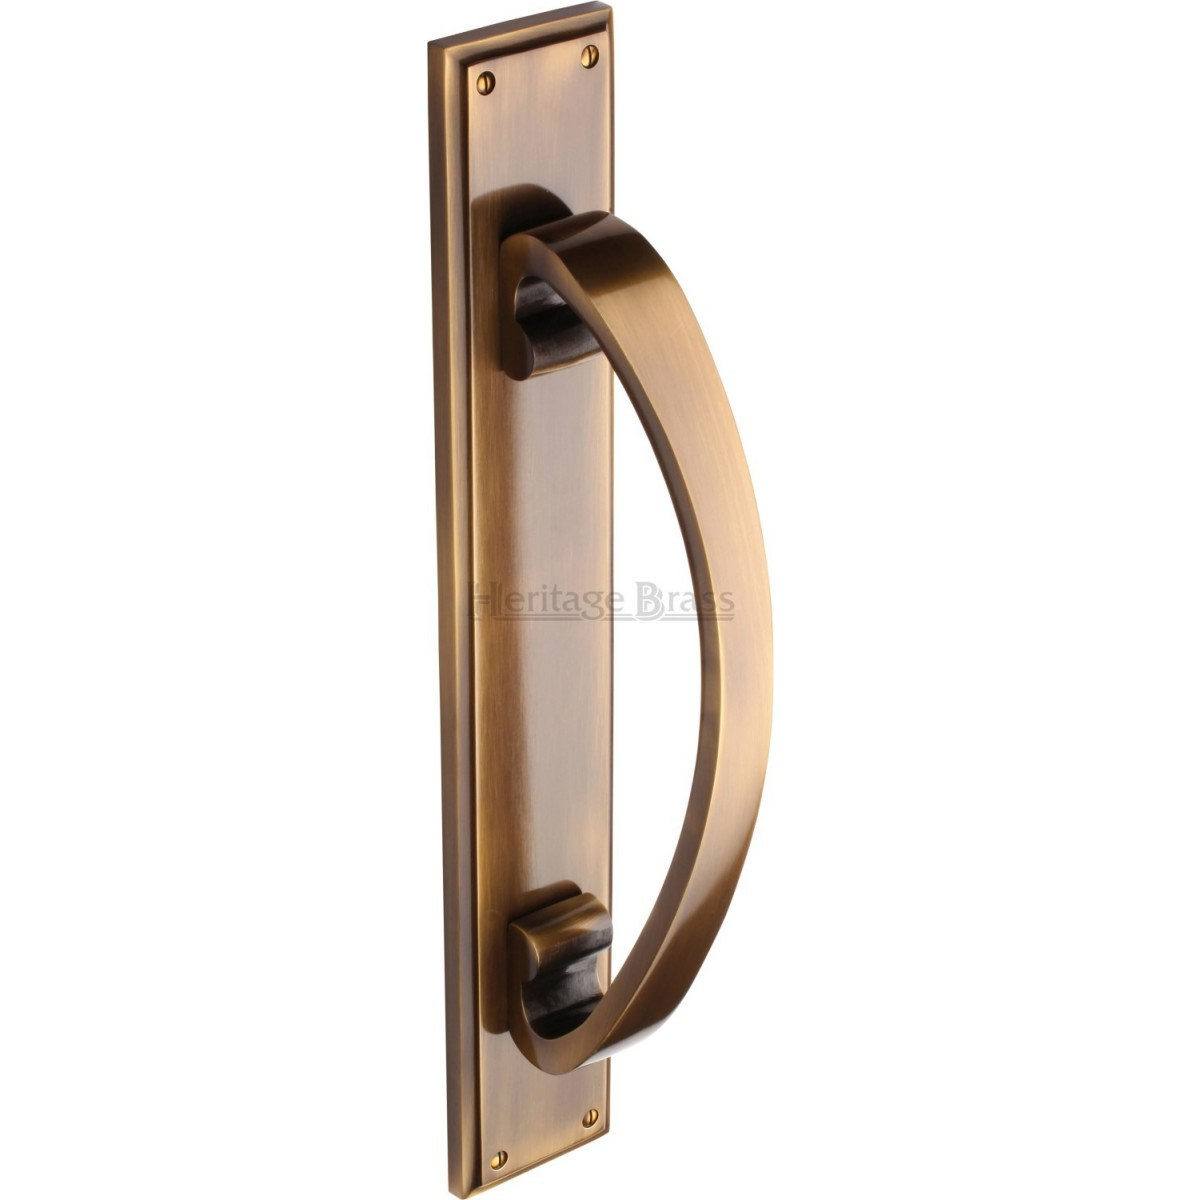 Heritage Brass Pull Handle On Plate Large V1162 Pull